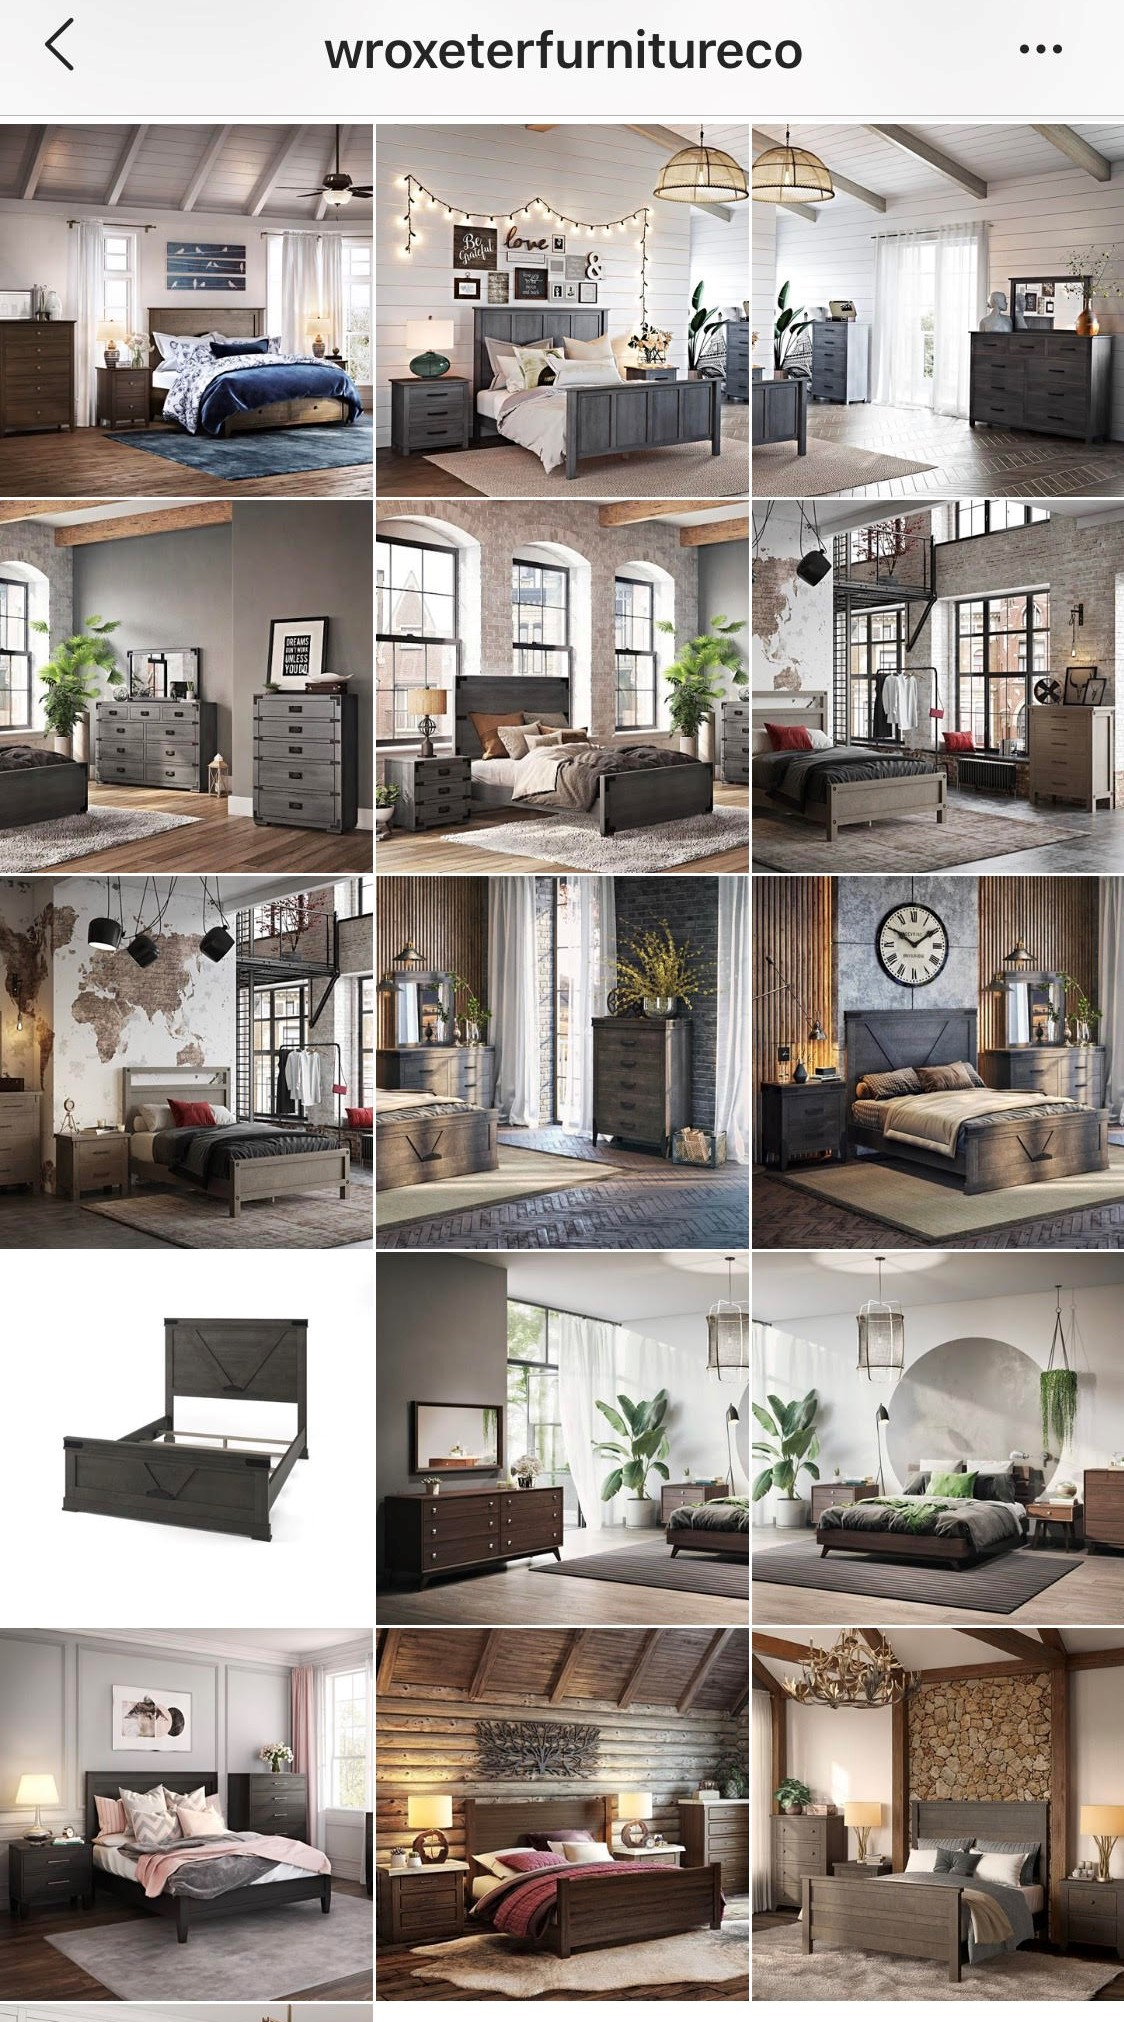 3D Renderings in Furniture Retailer Product Gallery